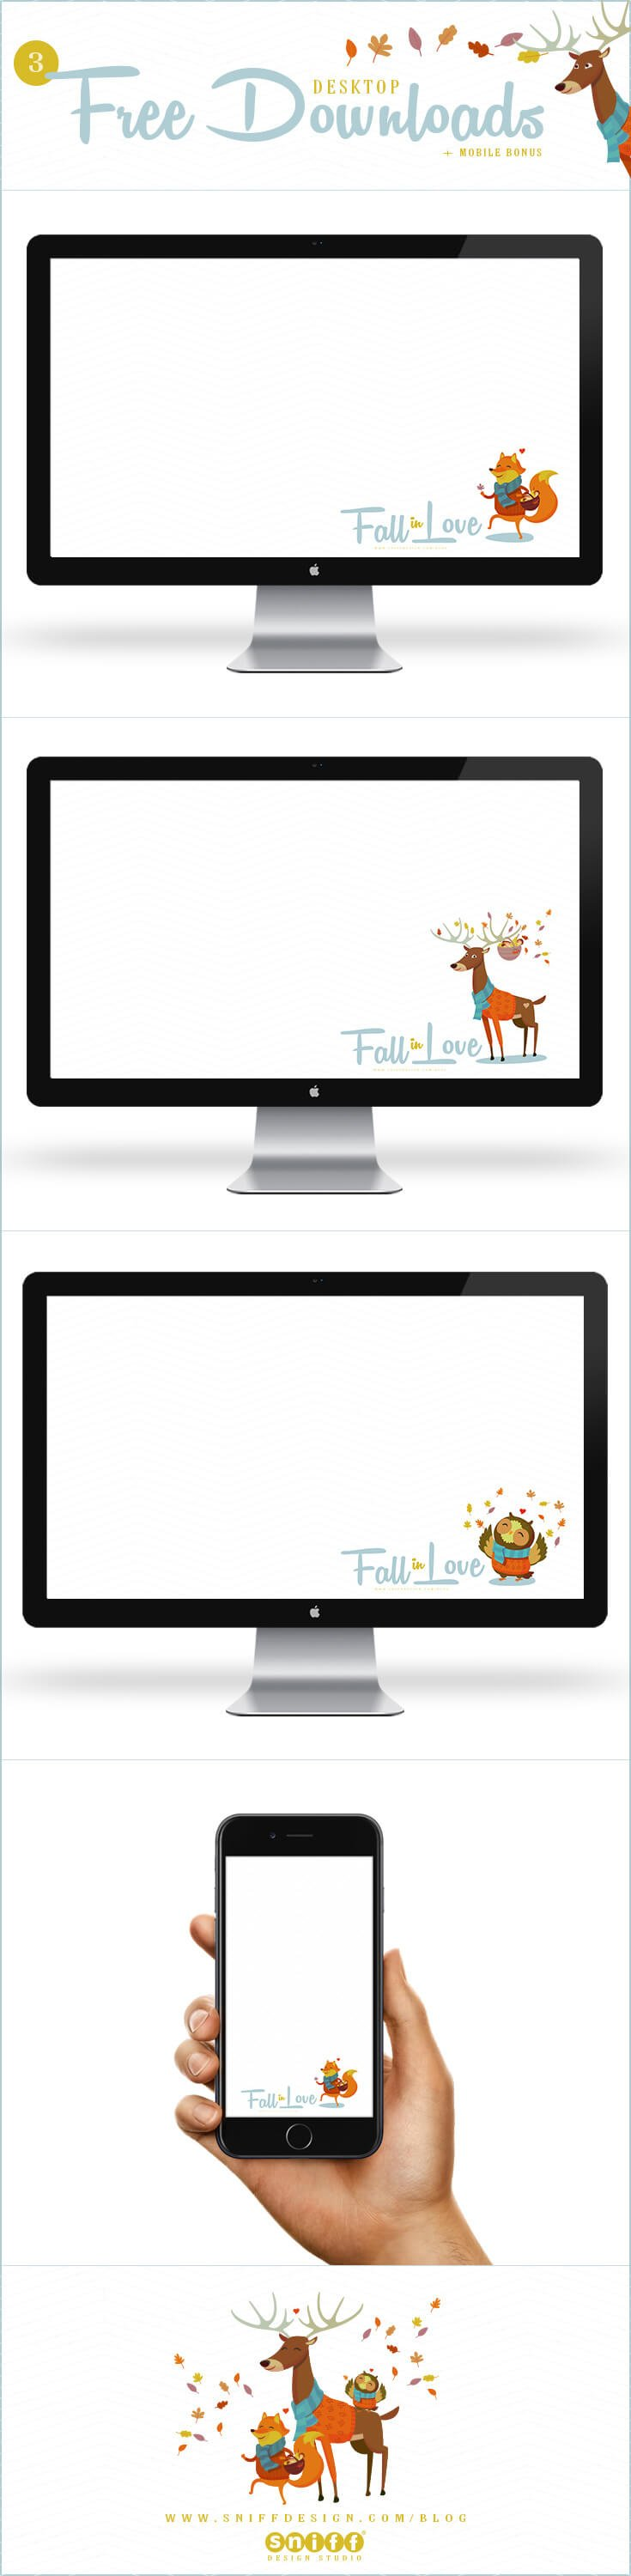 3-free-fall-desktop-downloads-4-sniff-design-studio-pet-blog